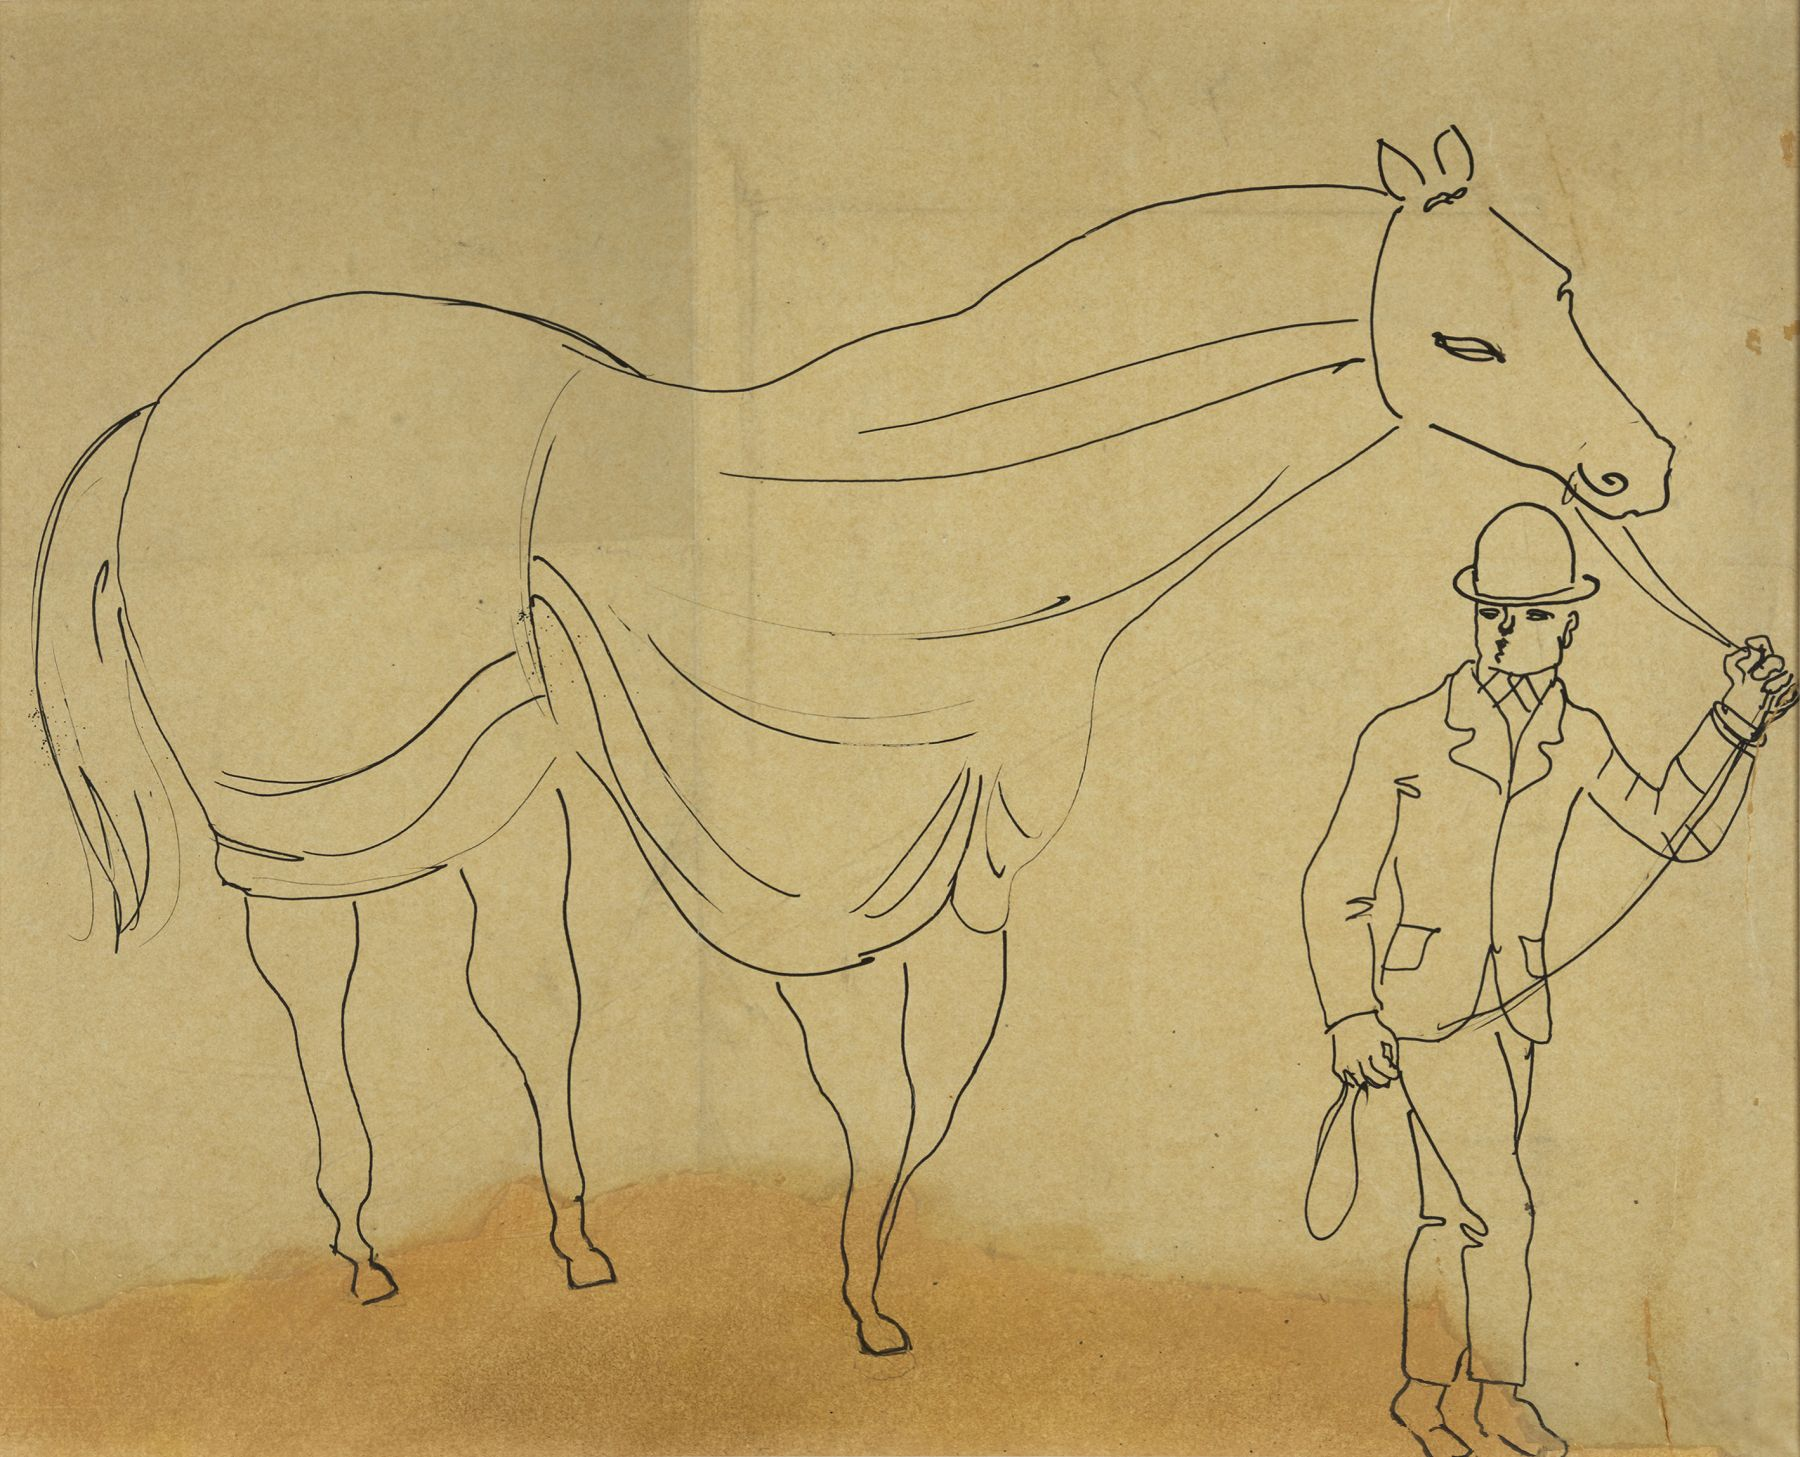 Raoul Dufy, Cheval et Son Jockey, c. 1926, Indian ink on paper 17 3/4 x 21 1/4 inches